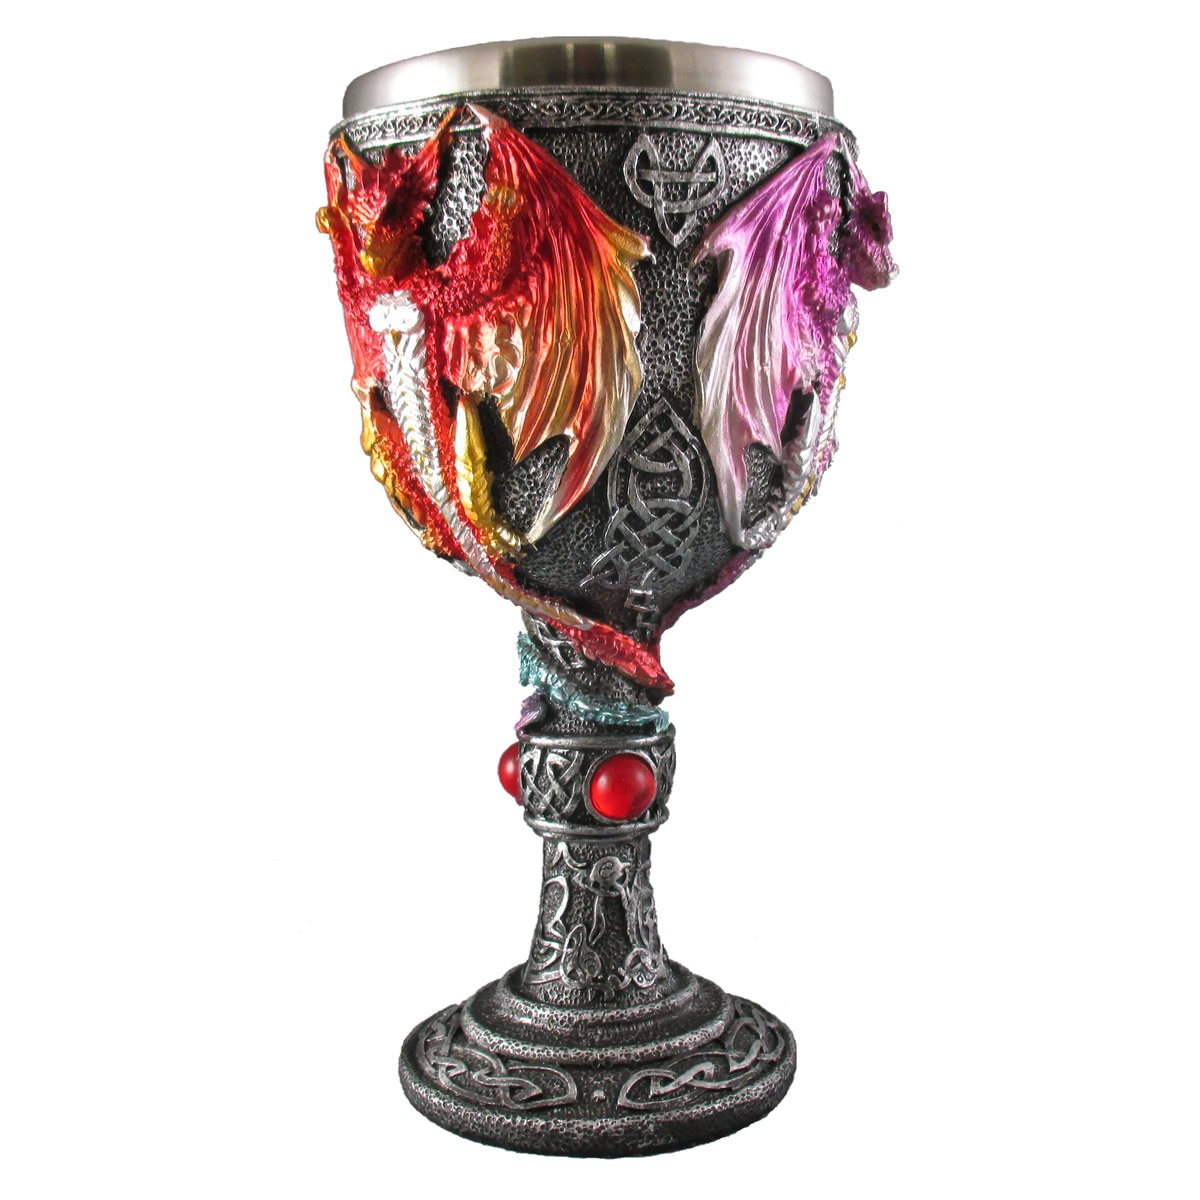 Medieval Renaissance Dragon Goblet, Celtic Drinking Wine Glass, Fantasy Pagan Wicca Chalice, Blue, Red, Purple Mythical Mug Everspring Import Company